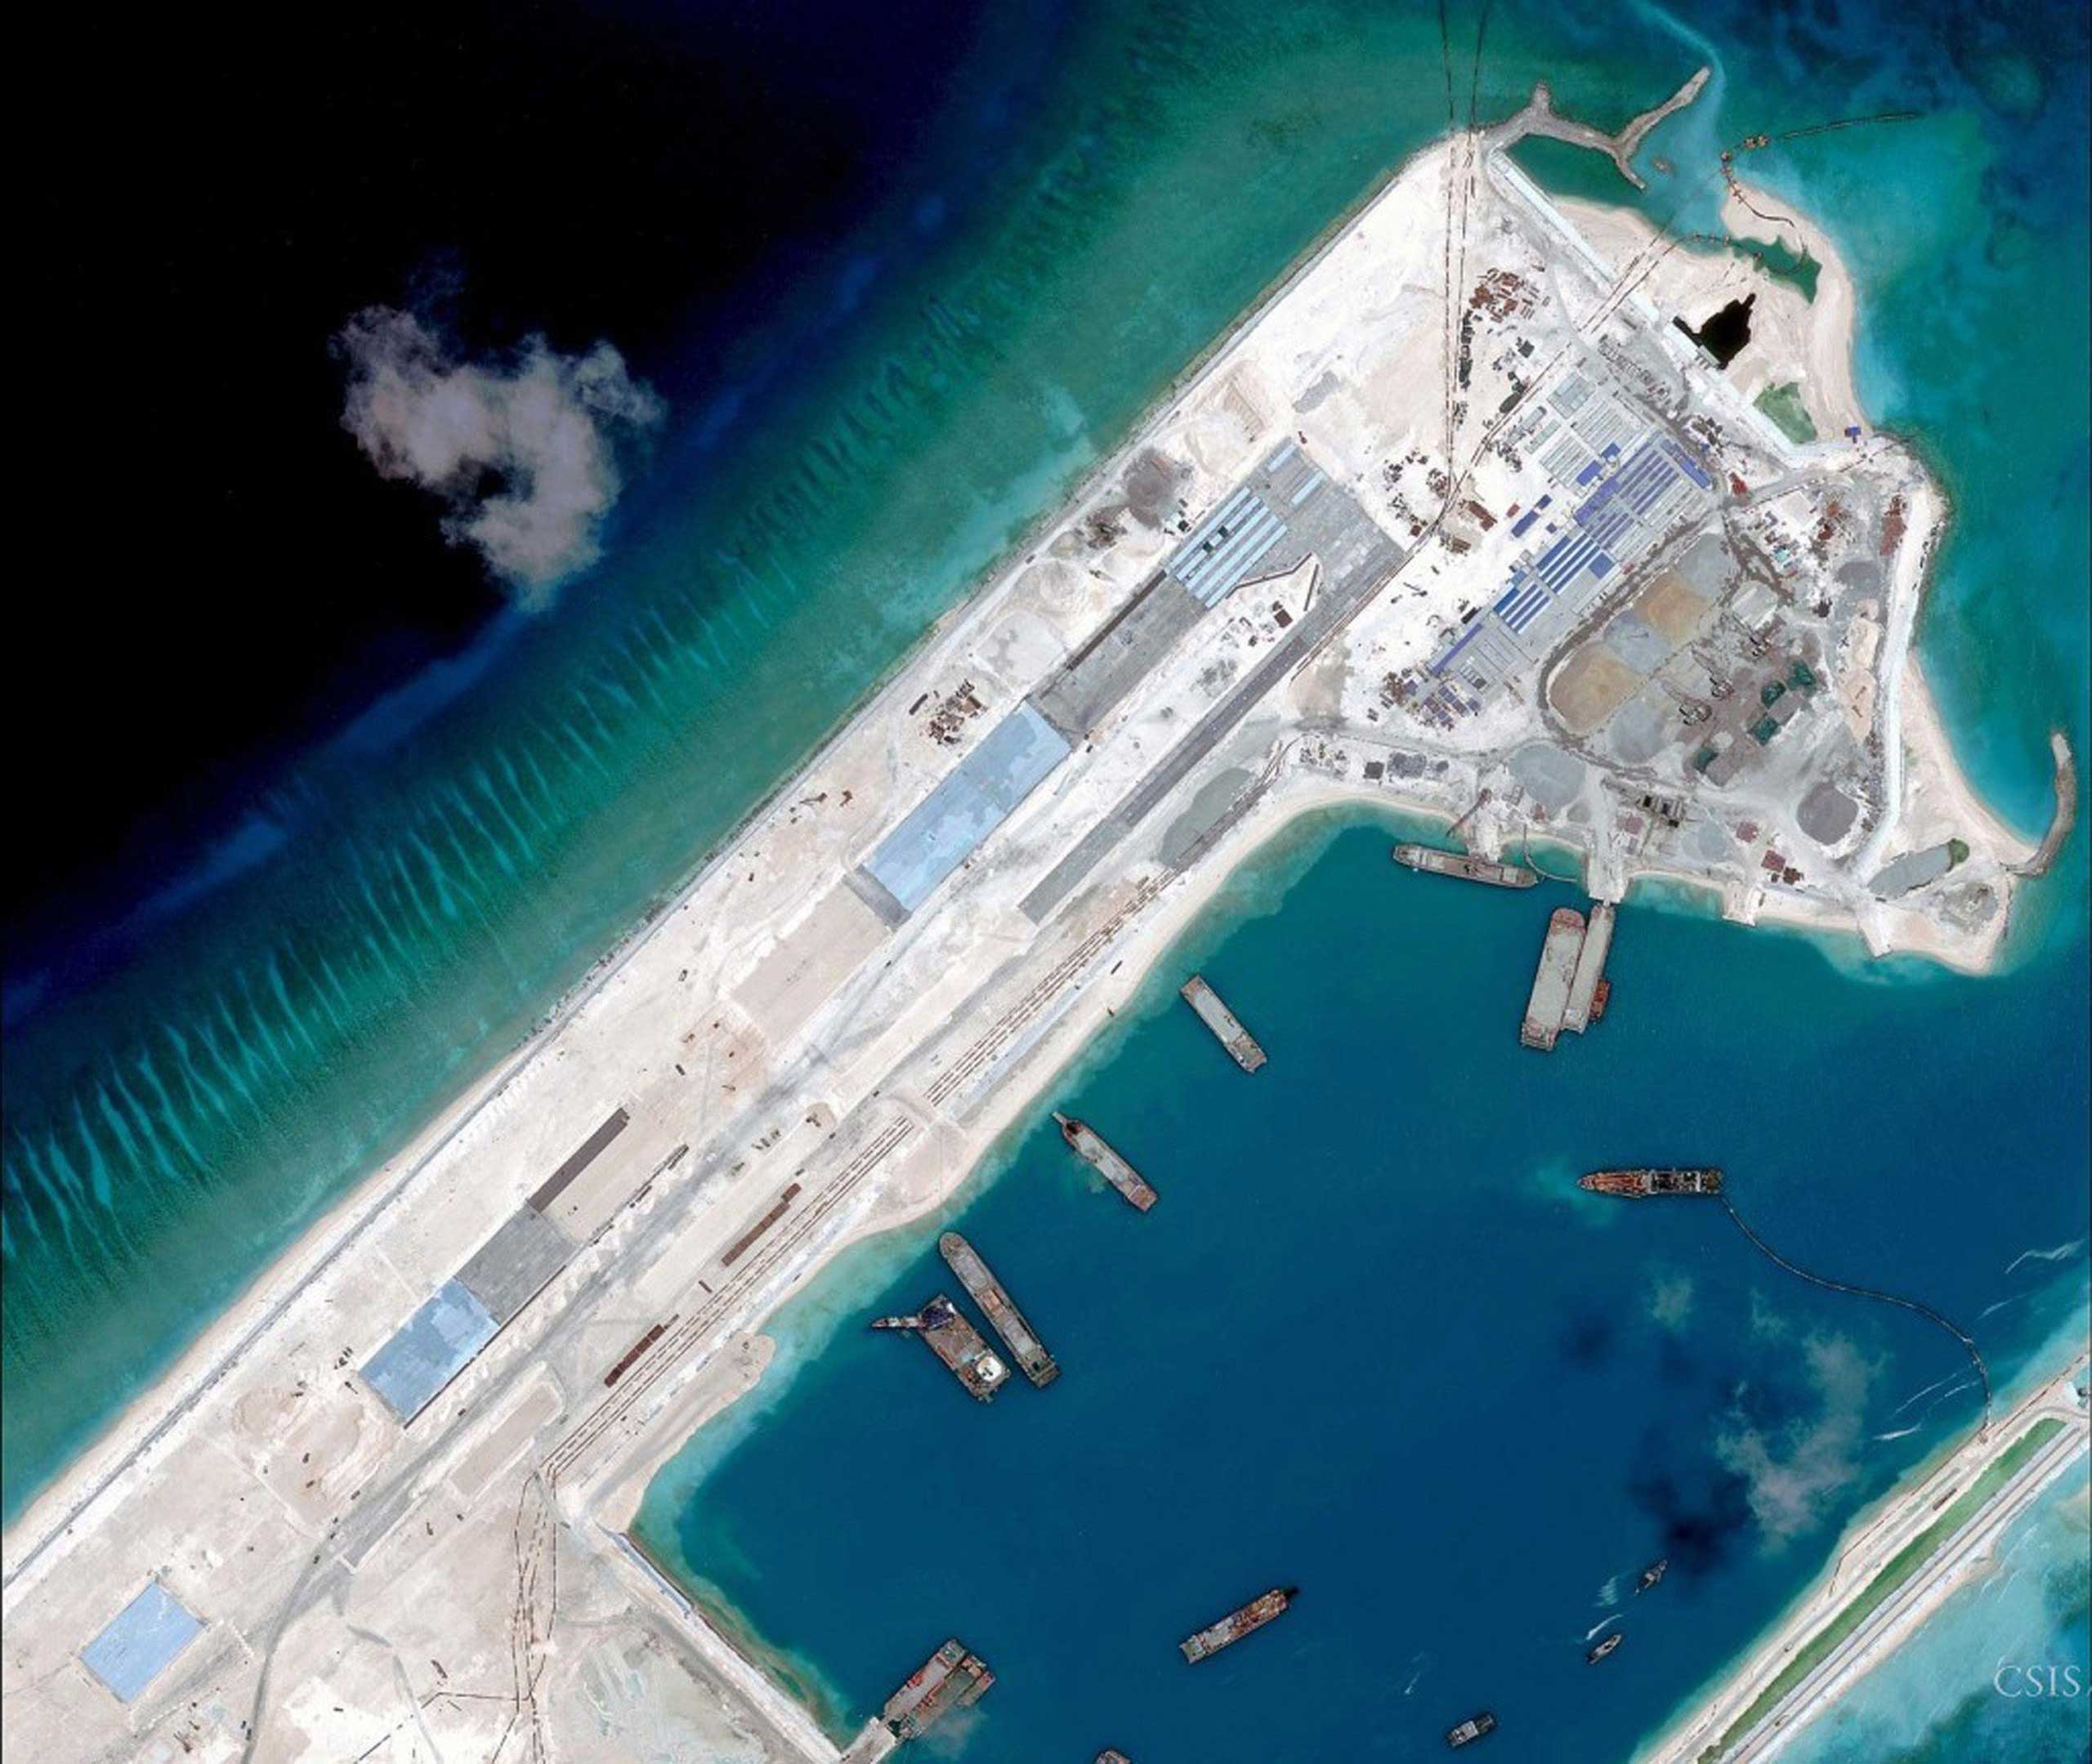 Airstrip construction on Fiery Cross Reef in the South China Sea, seen in a satellite image taken on  April 2, 2015.